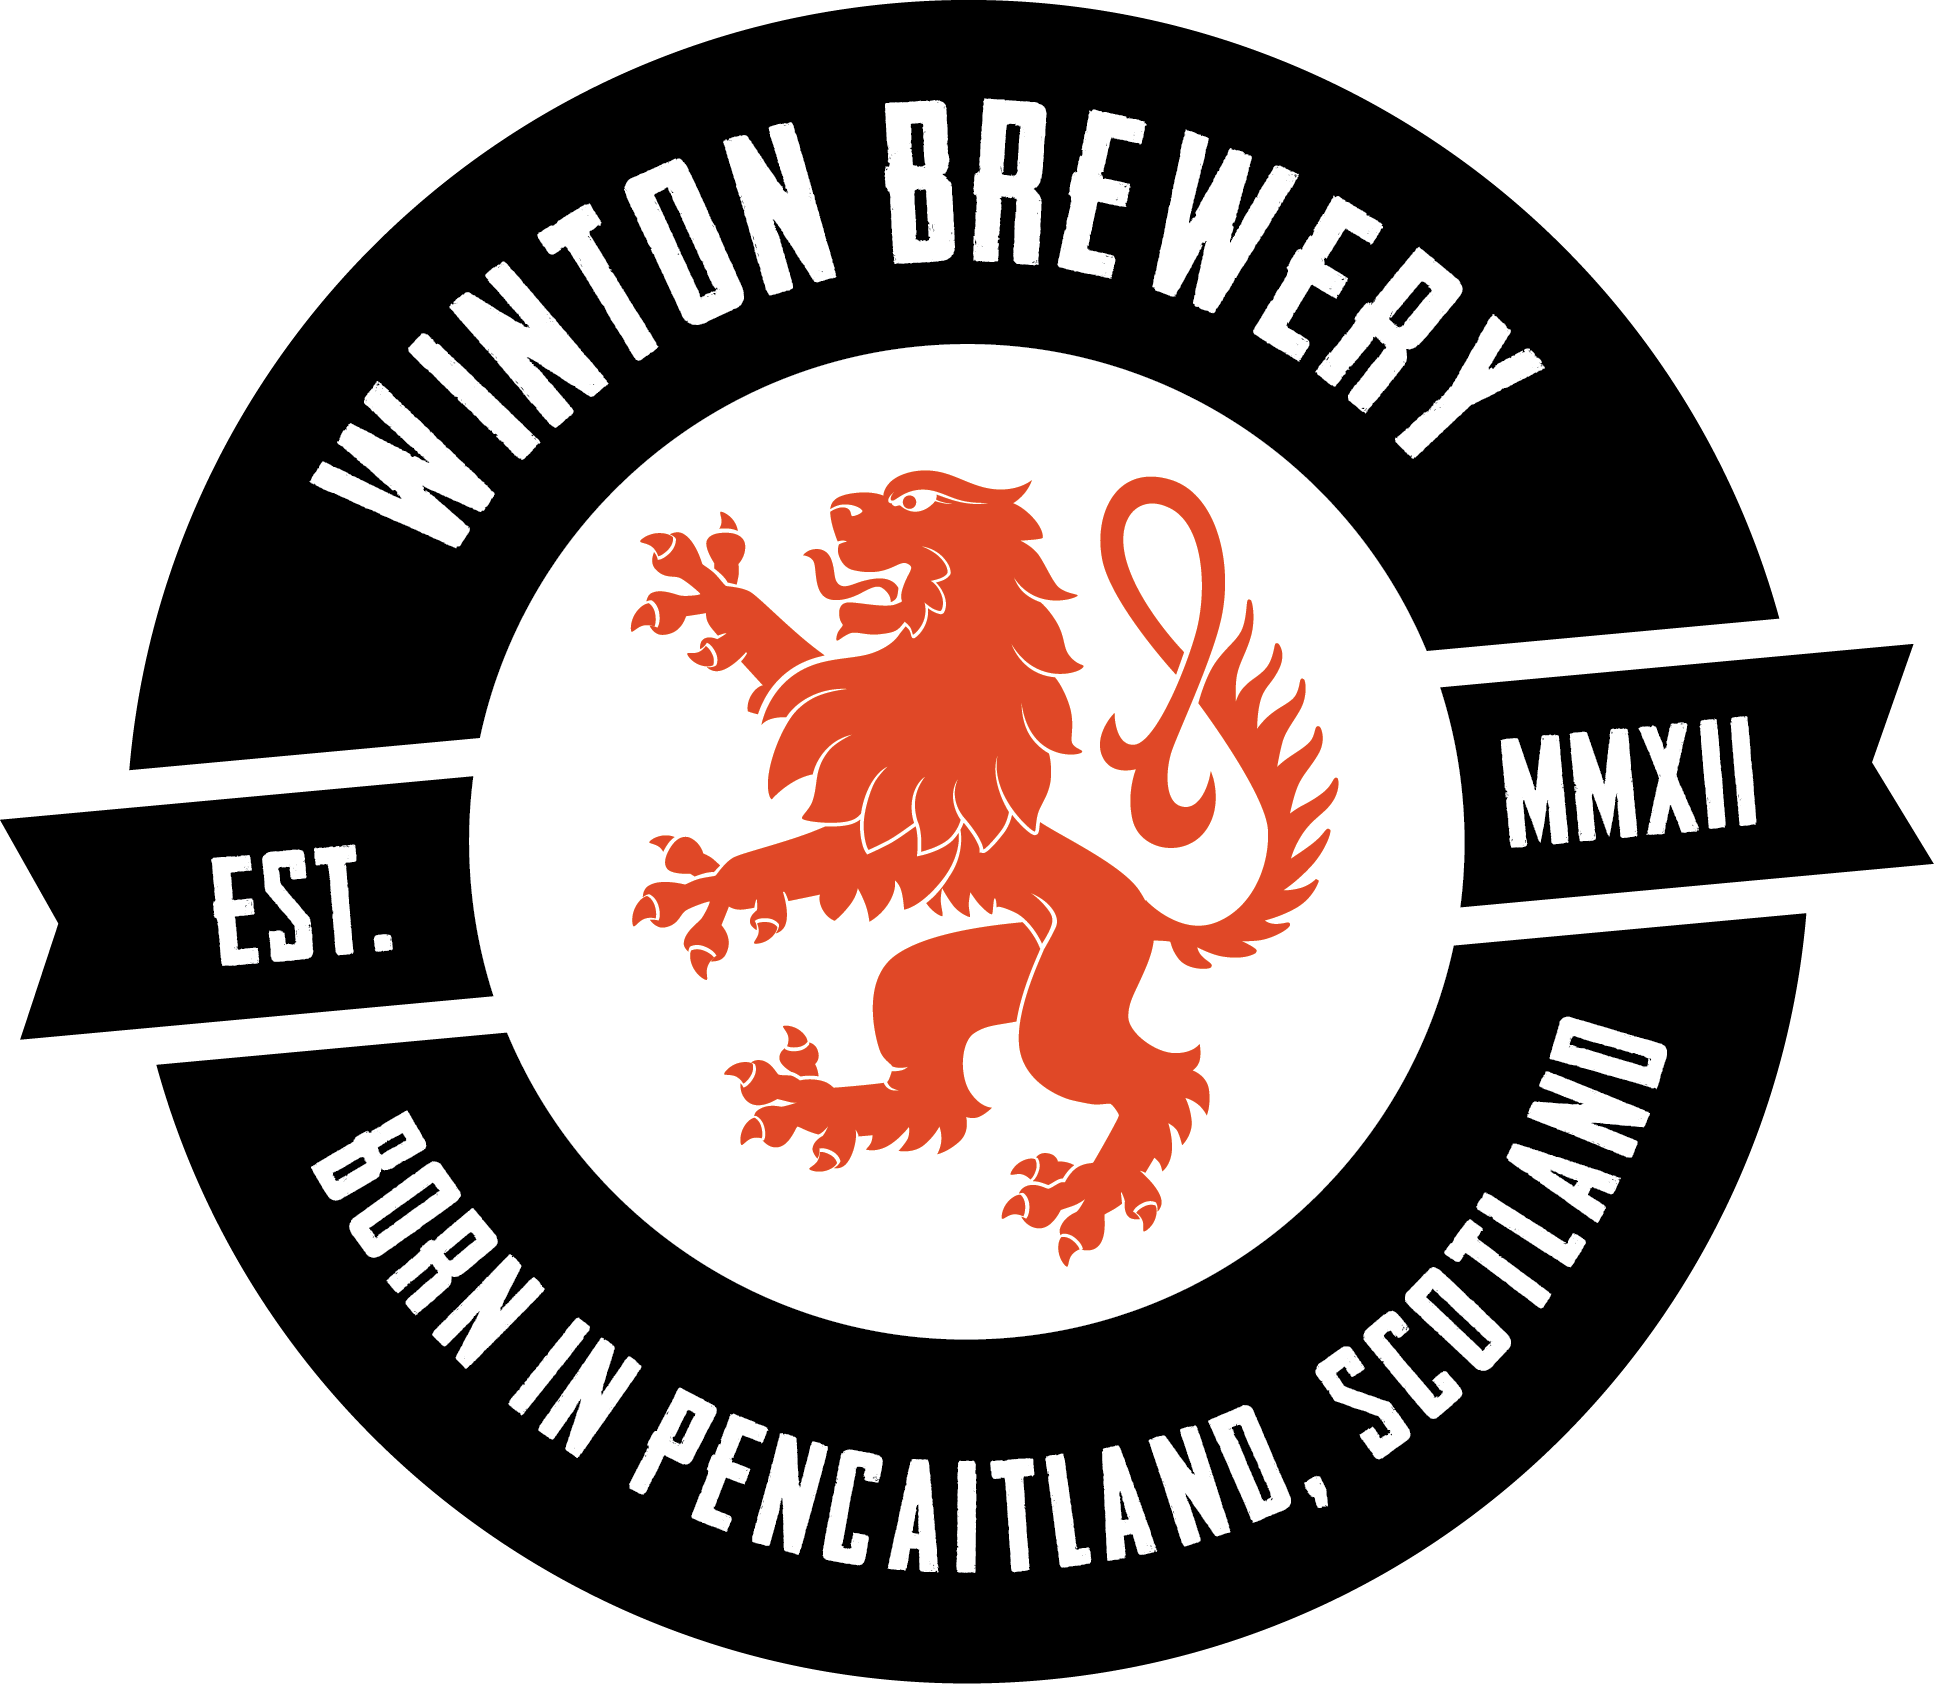 Winton Brewery